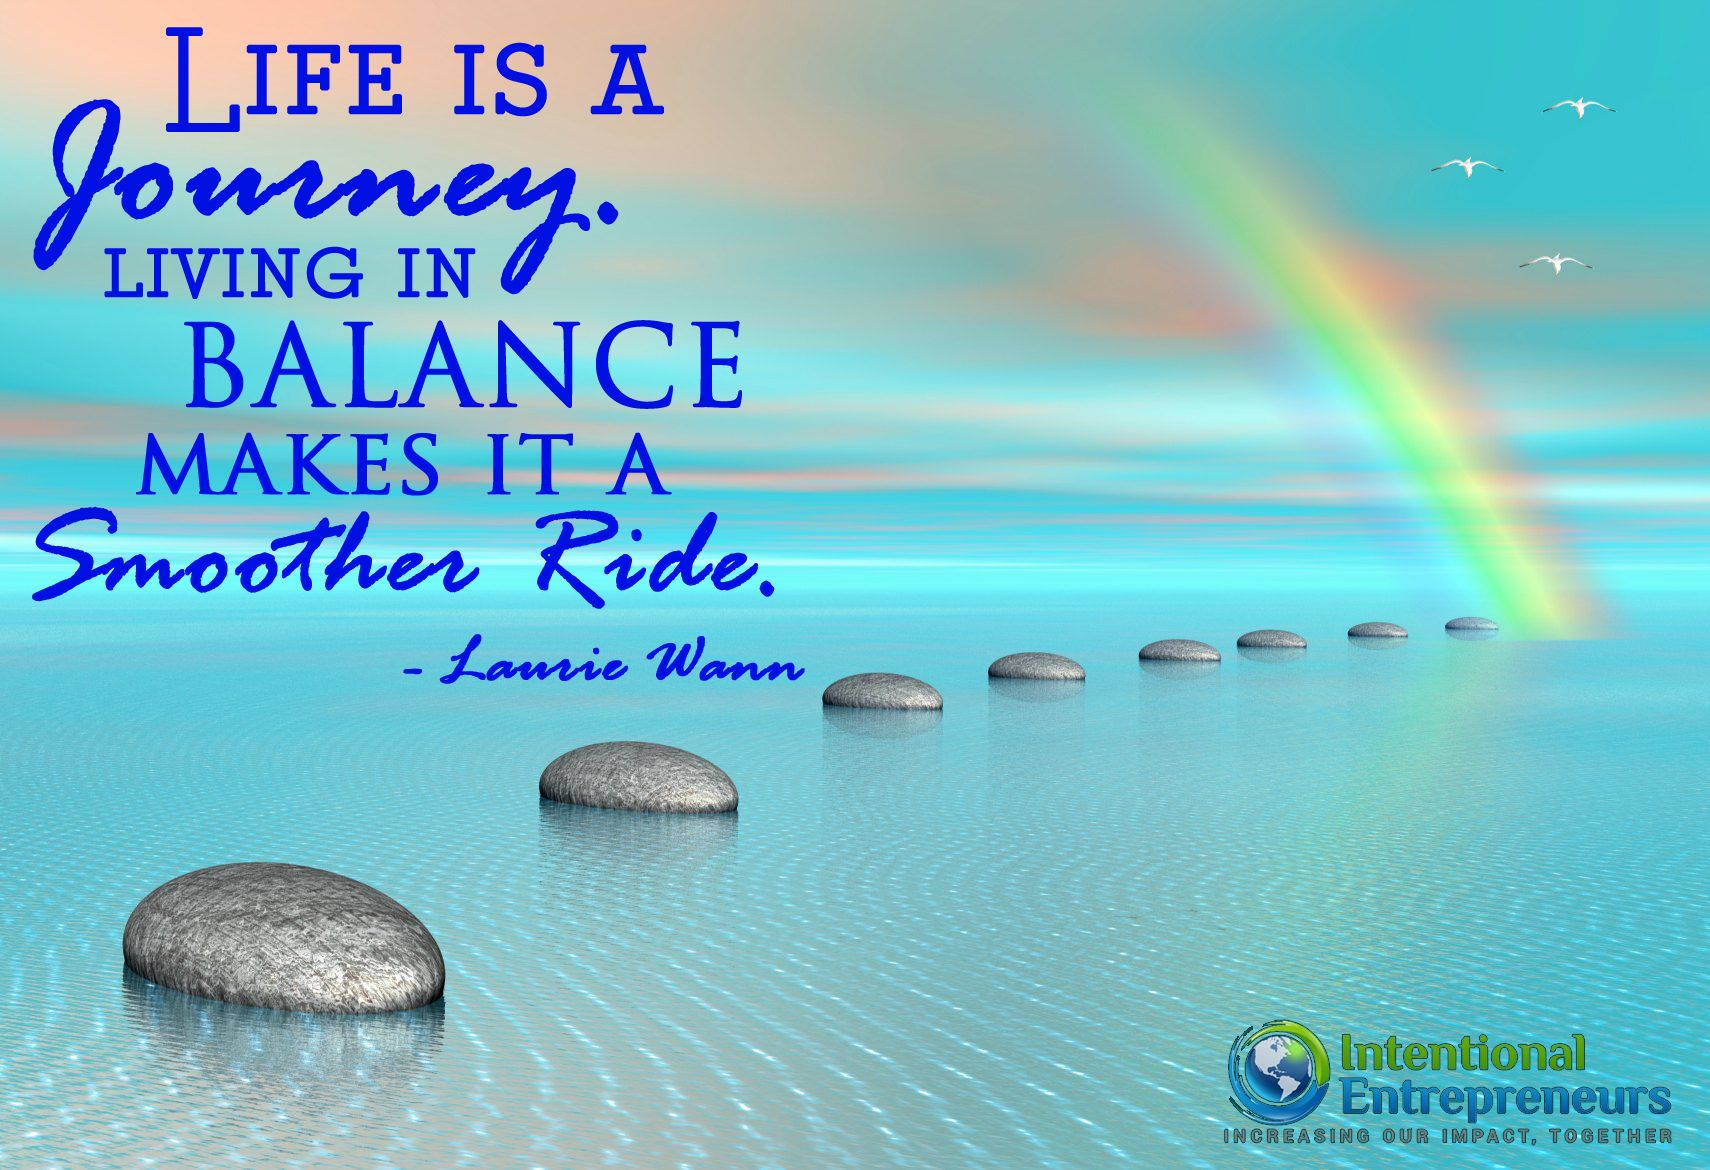 Finding Balance in Life Journey Balance SmootherRide